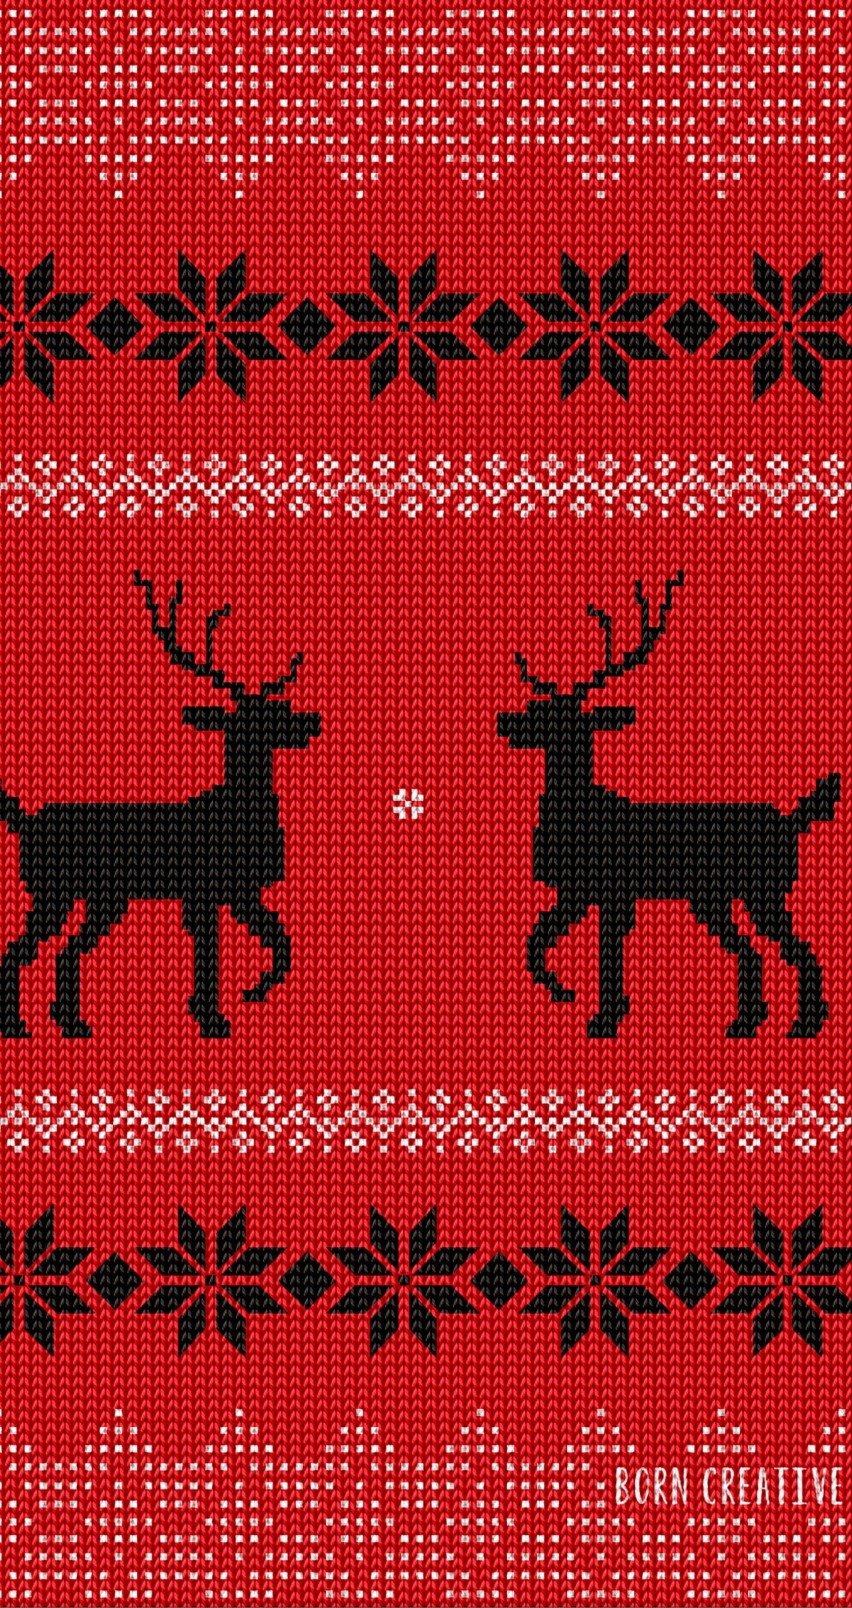 Iphone 6s Wallpaper Hd Download Ugly Christmas Sweater Hd Wallpaper For Iphone 6